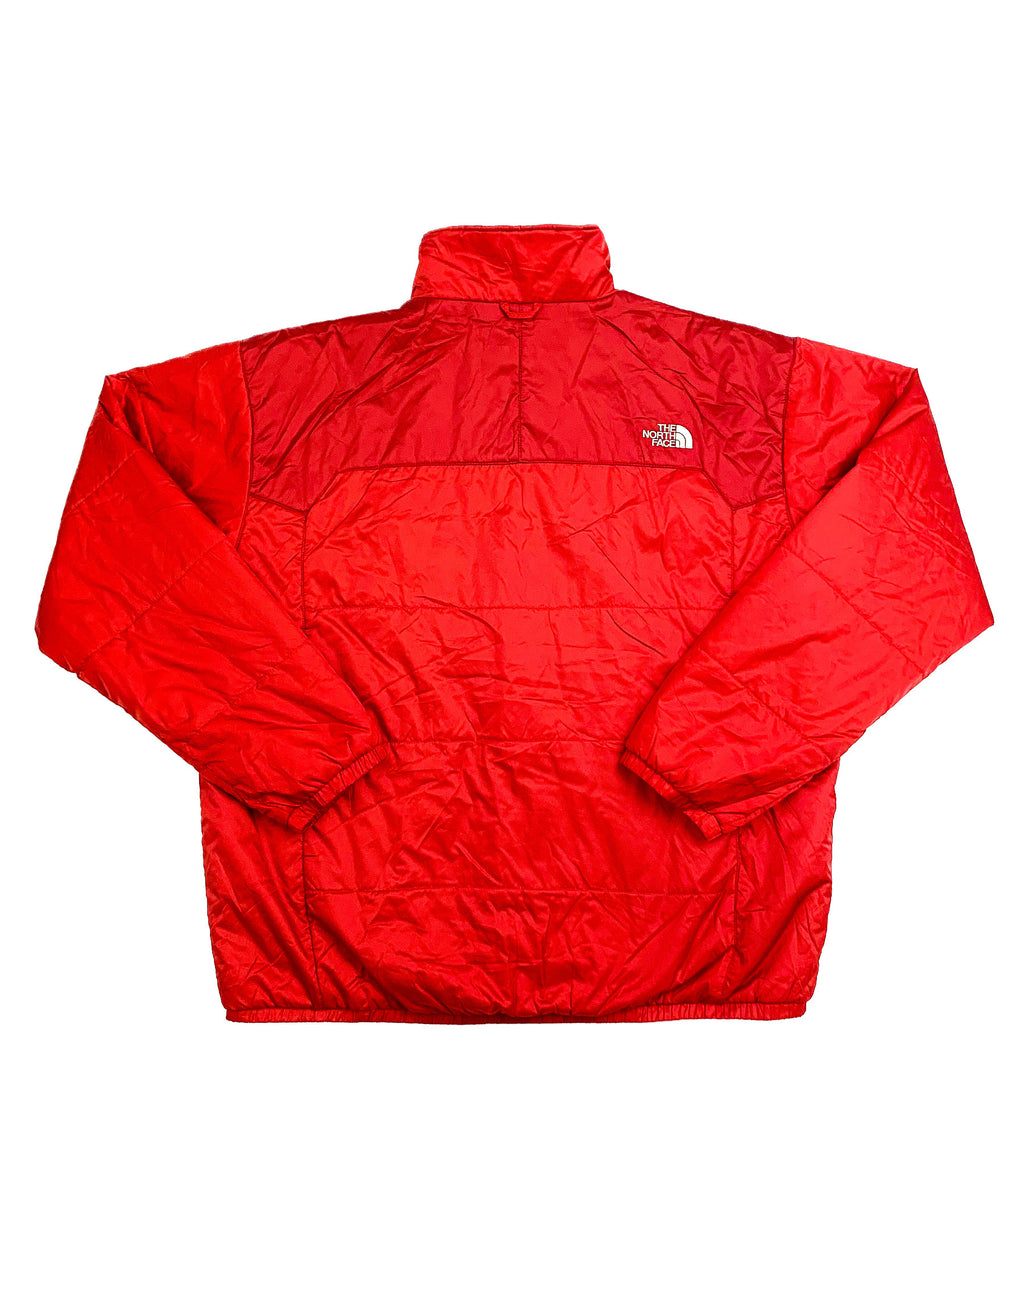 NORTH FACE RED LIGHTWEIGHT PUFFER